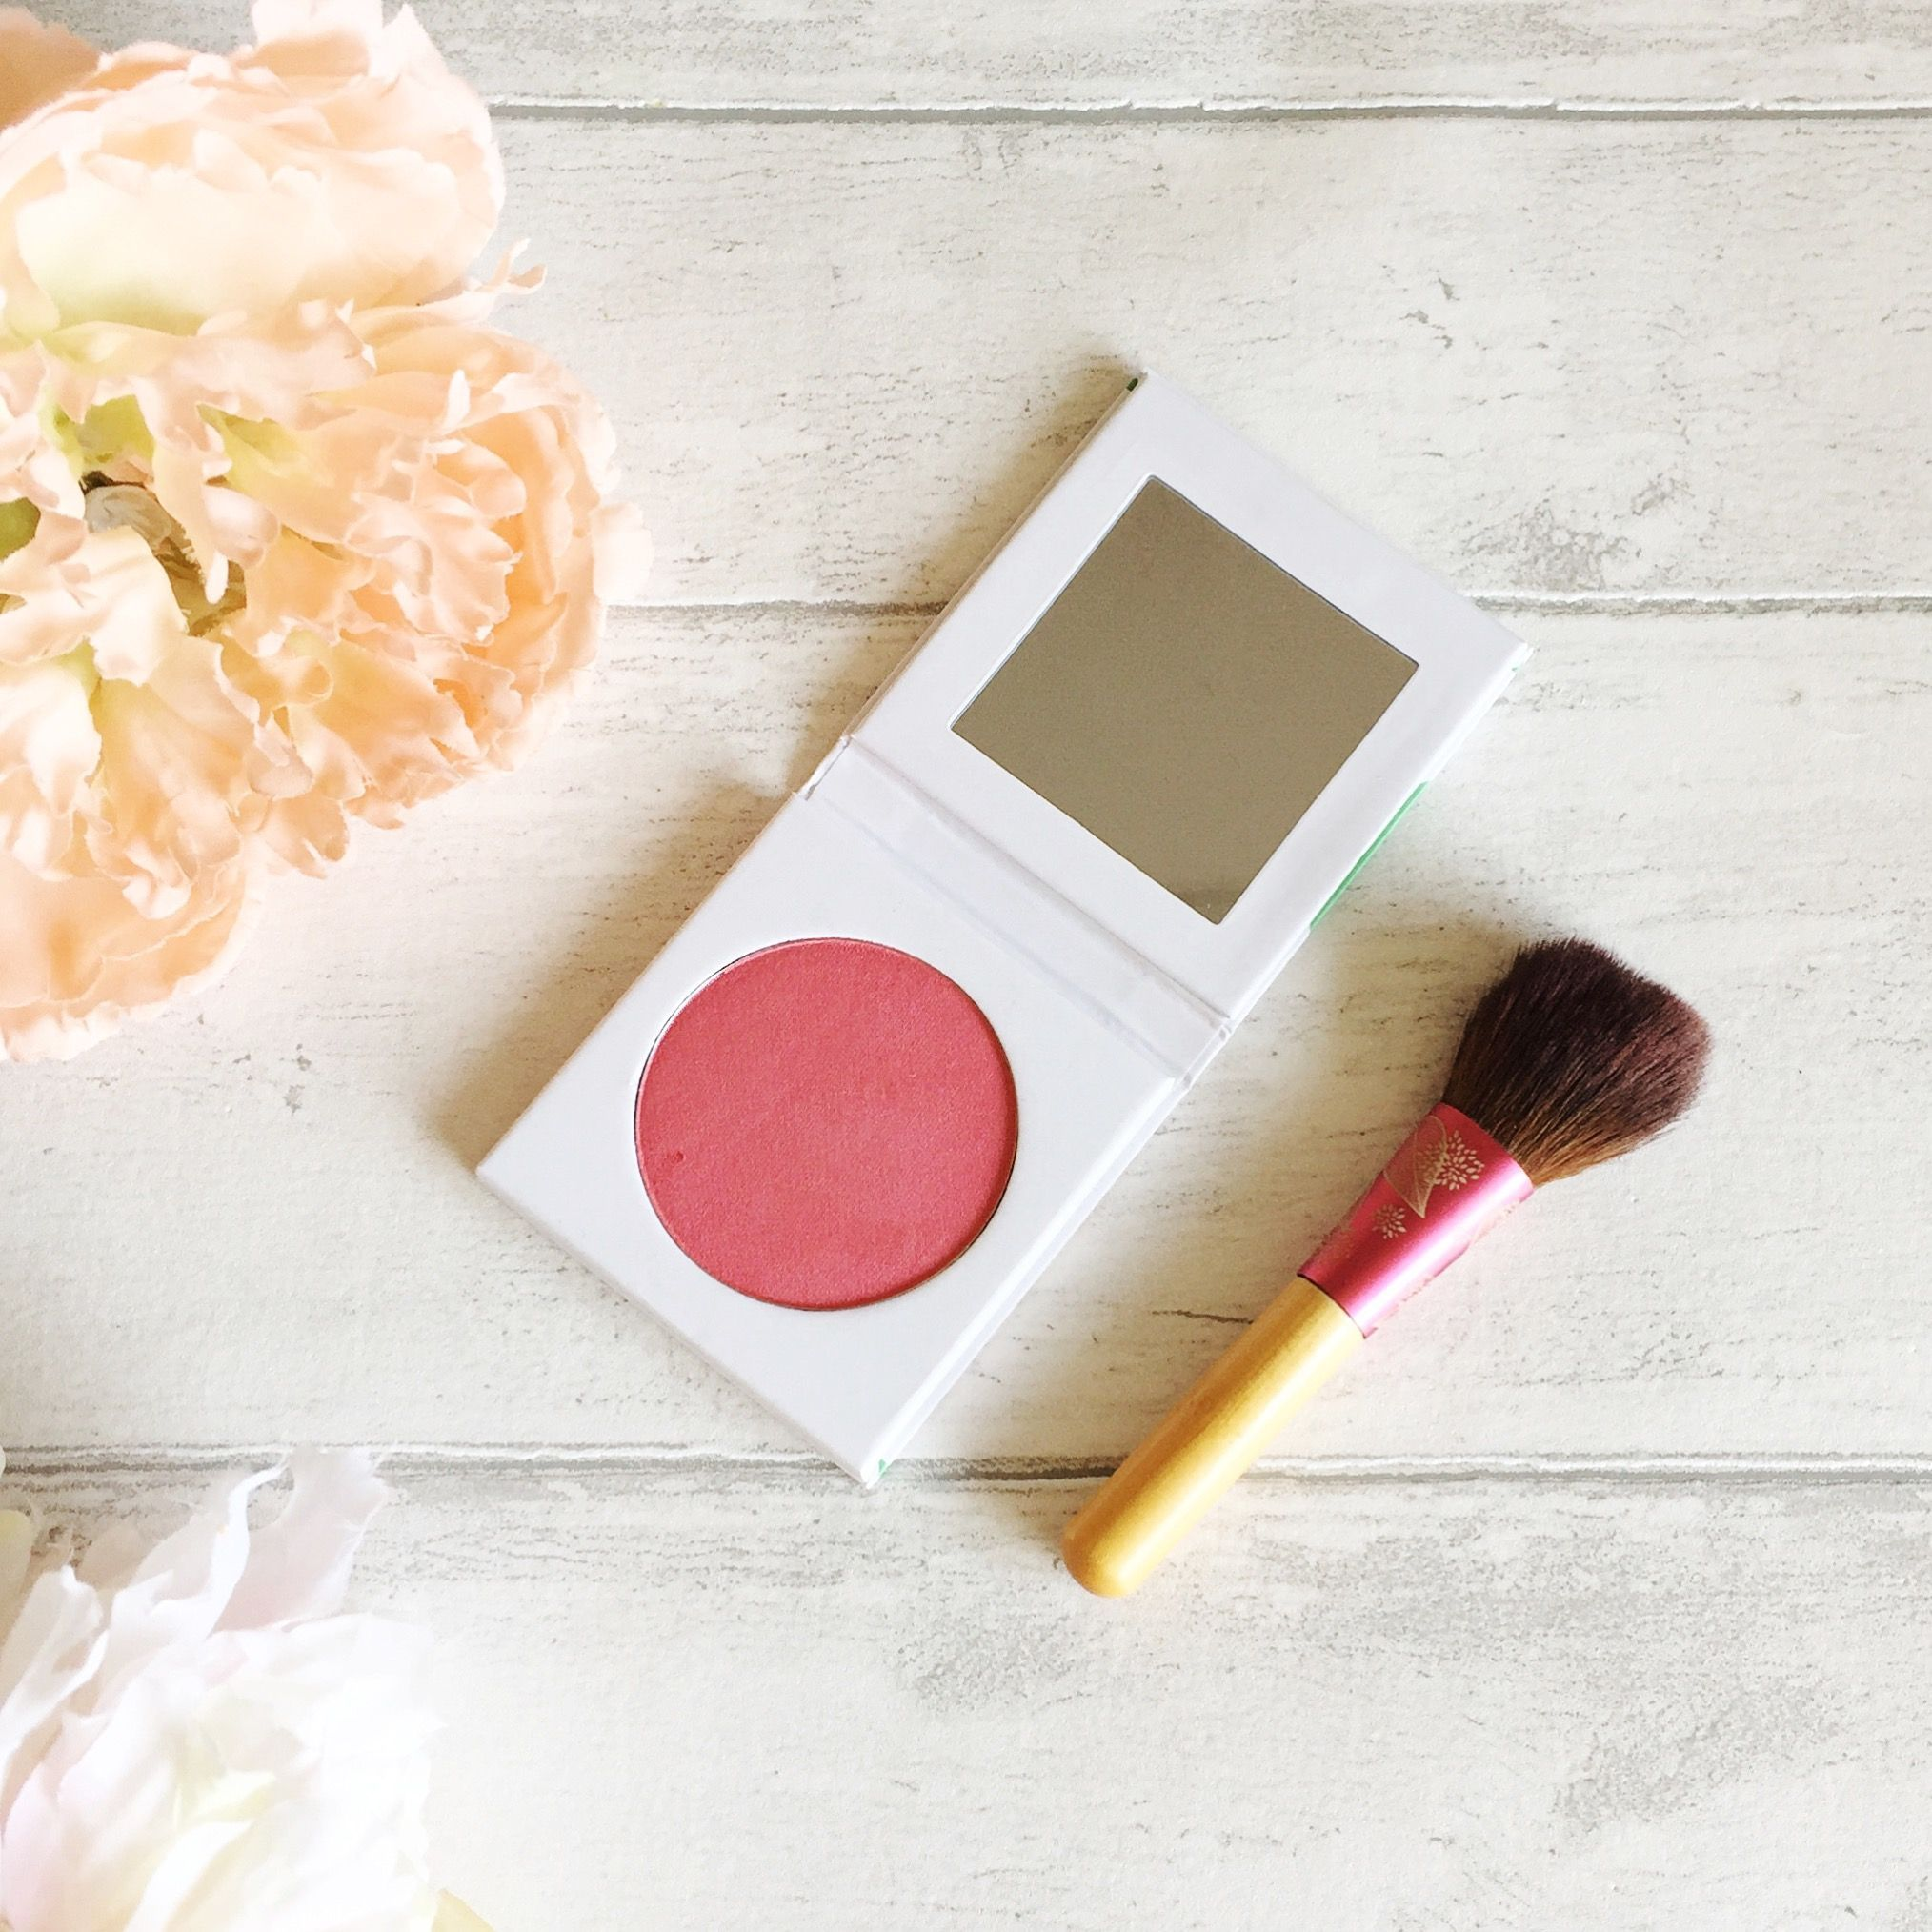 Review of PHB Ethical Beauty Pressed Mineral Blusher, a 30 ...